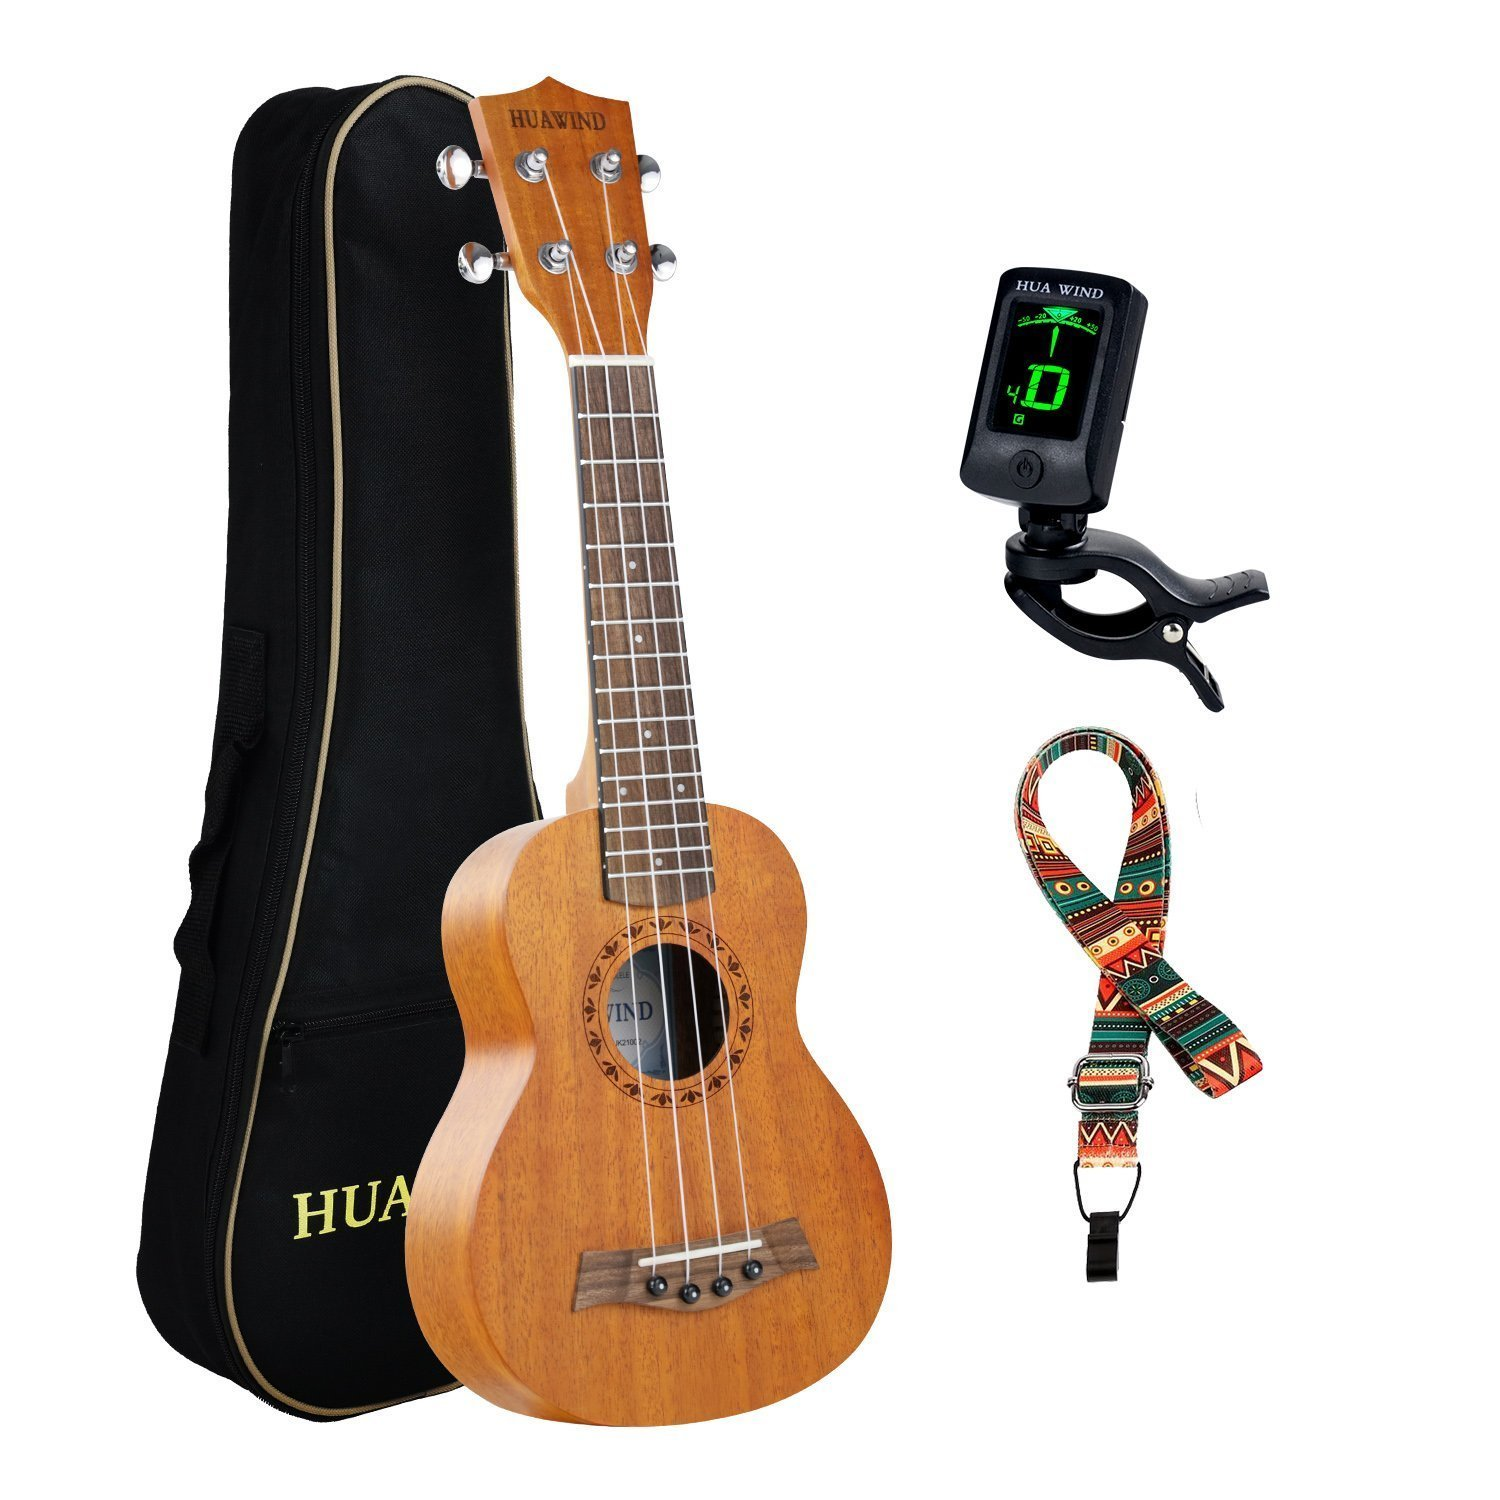 HUAWIND Soprano Mahogany Ukulele For Beginners Four String Guitar Kit with Design of unique engraving Pattern W/Gig Bag Tuner And Strap Ltd. HW21/23-002